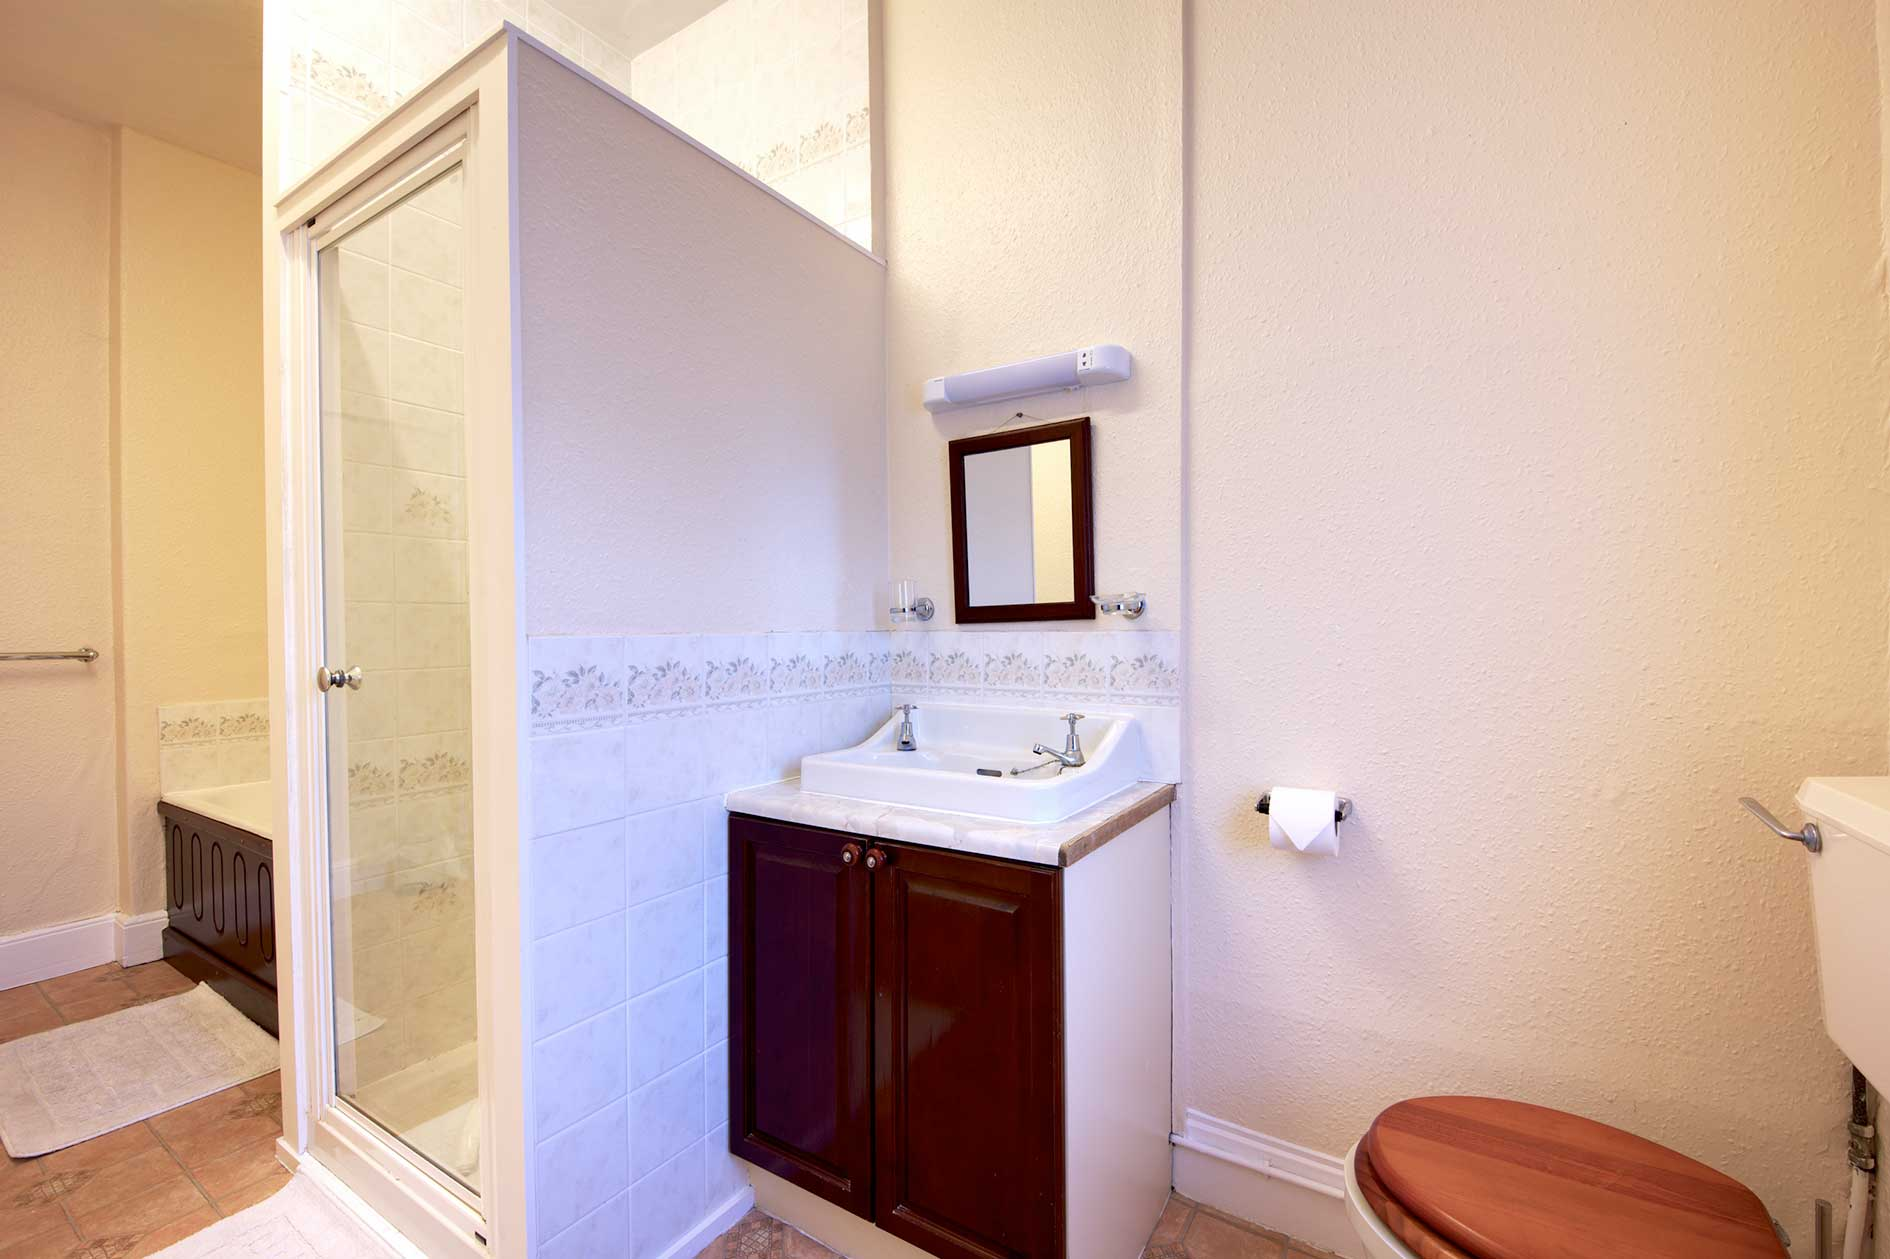 Bathroom With Shower Cubicle, Bath, Sink And Toilet